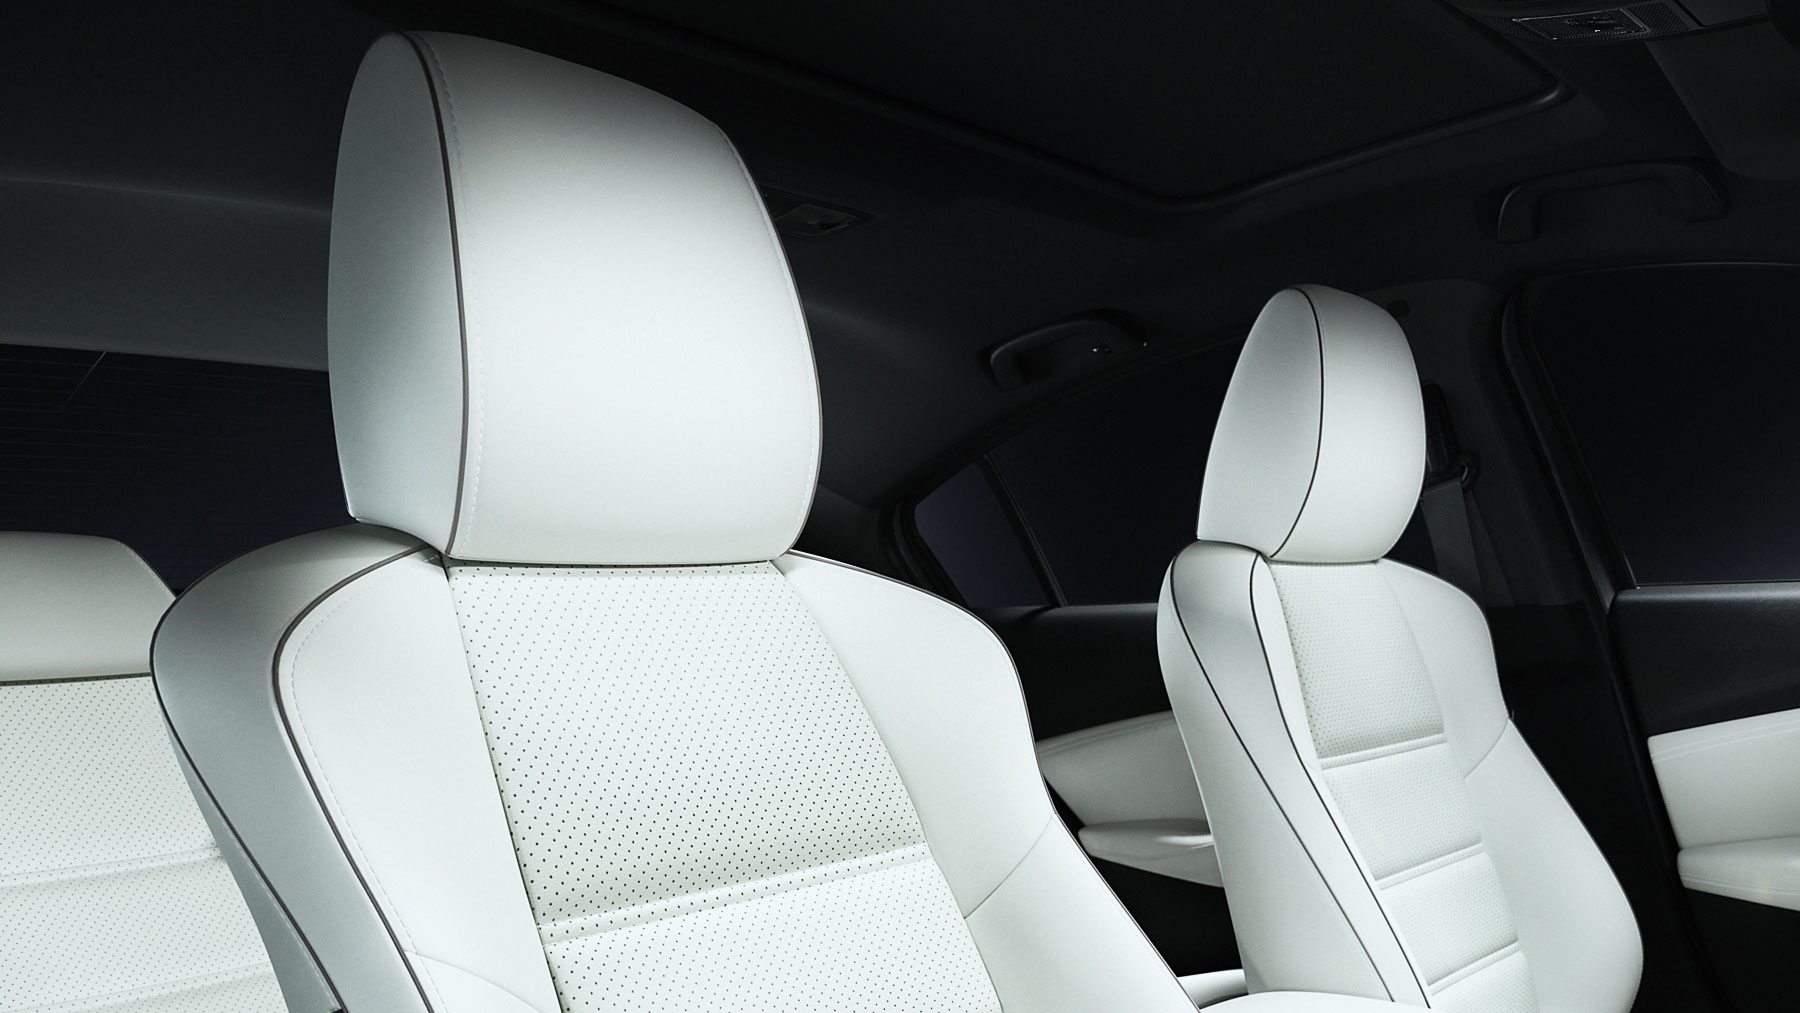 Leather-Appointed Seats in the Mazda6